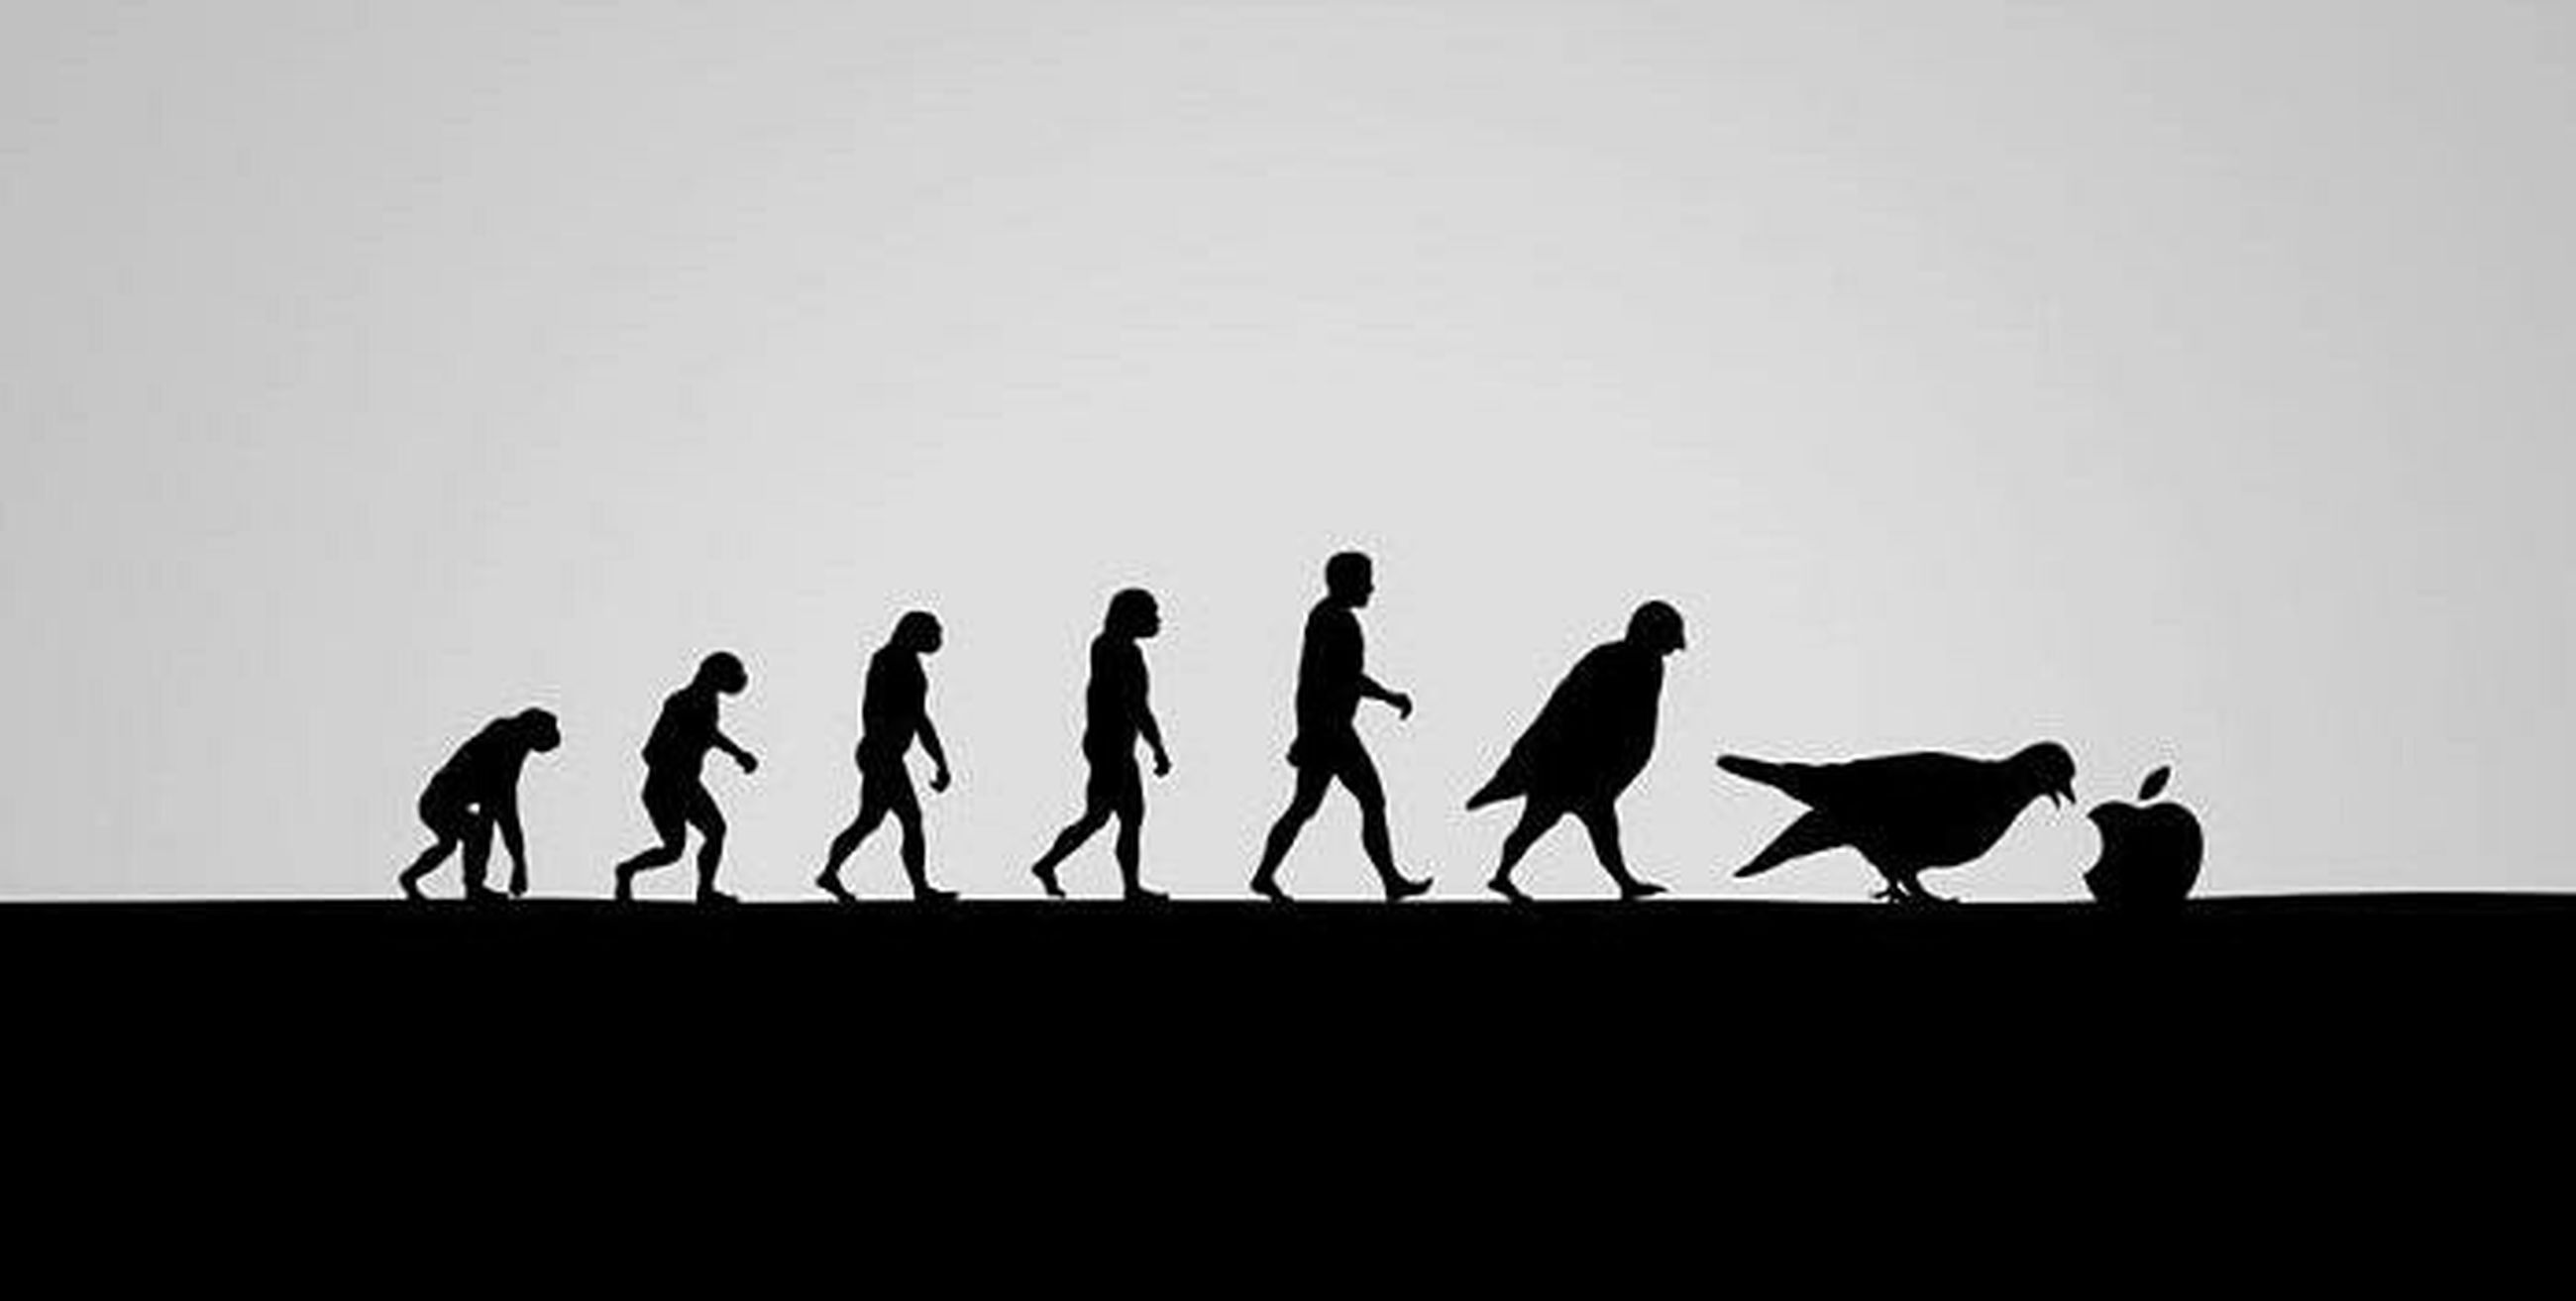 silhouette, togetherness, men, clear sky, copy space, animal themes, full length, walking, low angle view, lifestyles, bird, person, leisure activity, standing, outline, outdoors, medium group of people, wildlife, sky